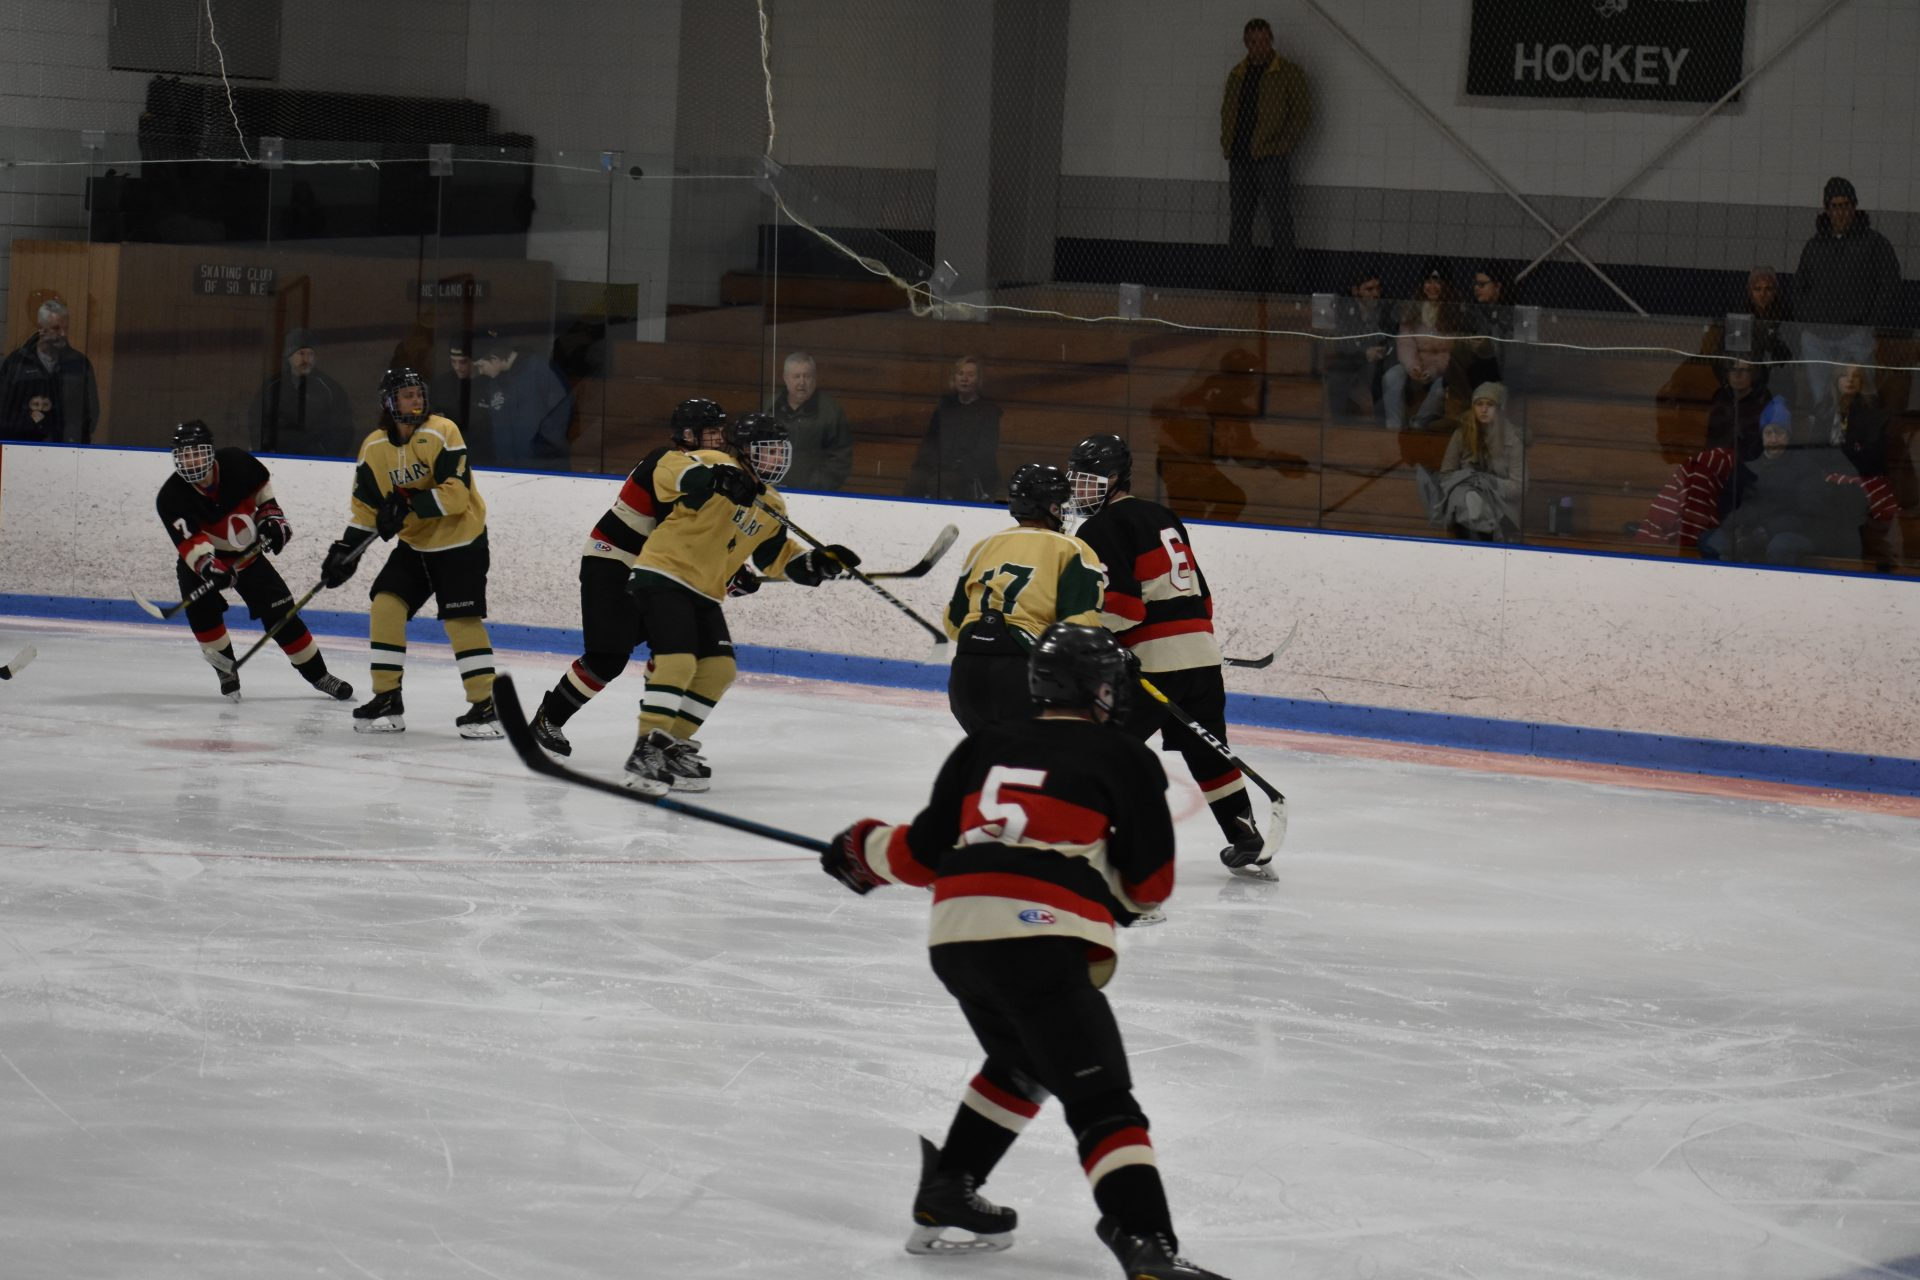 players skating